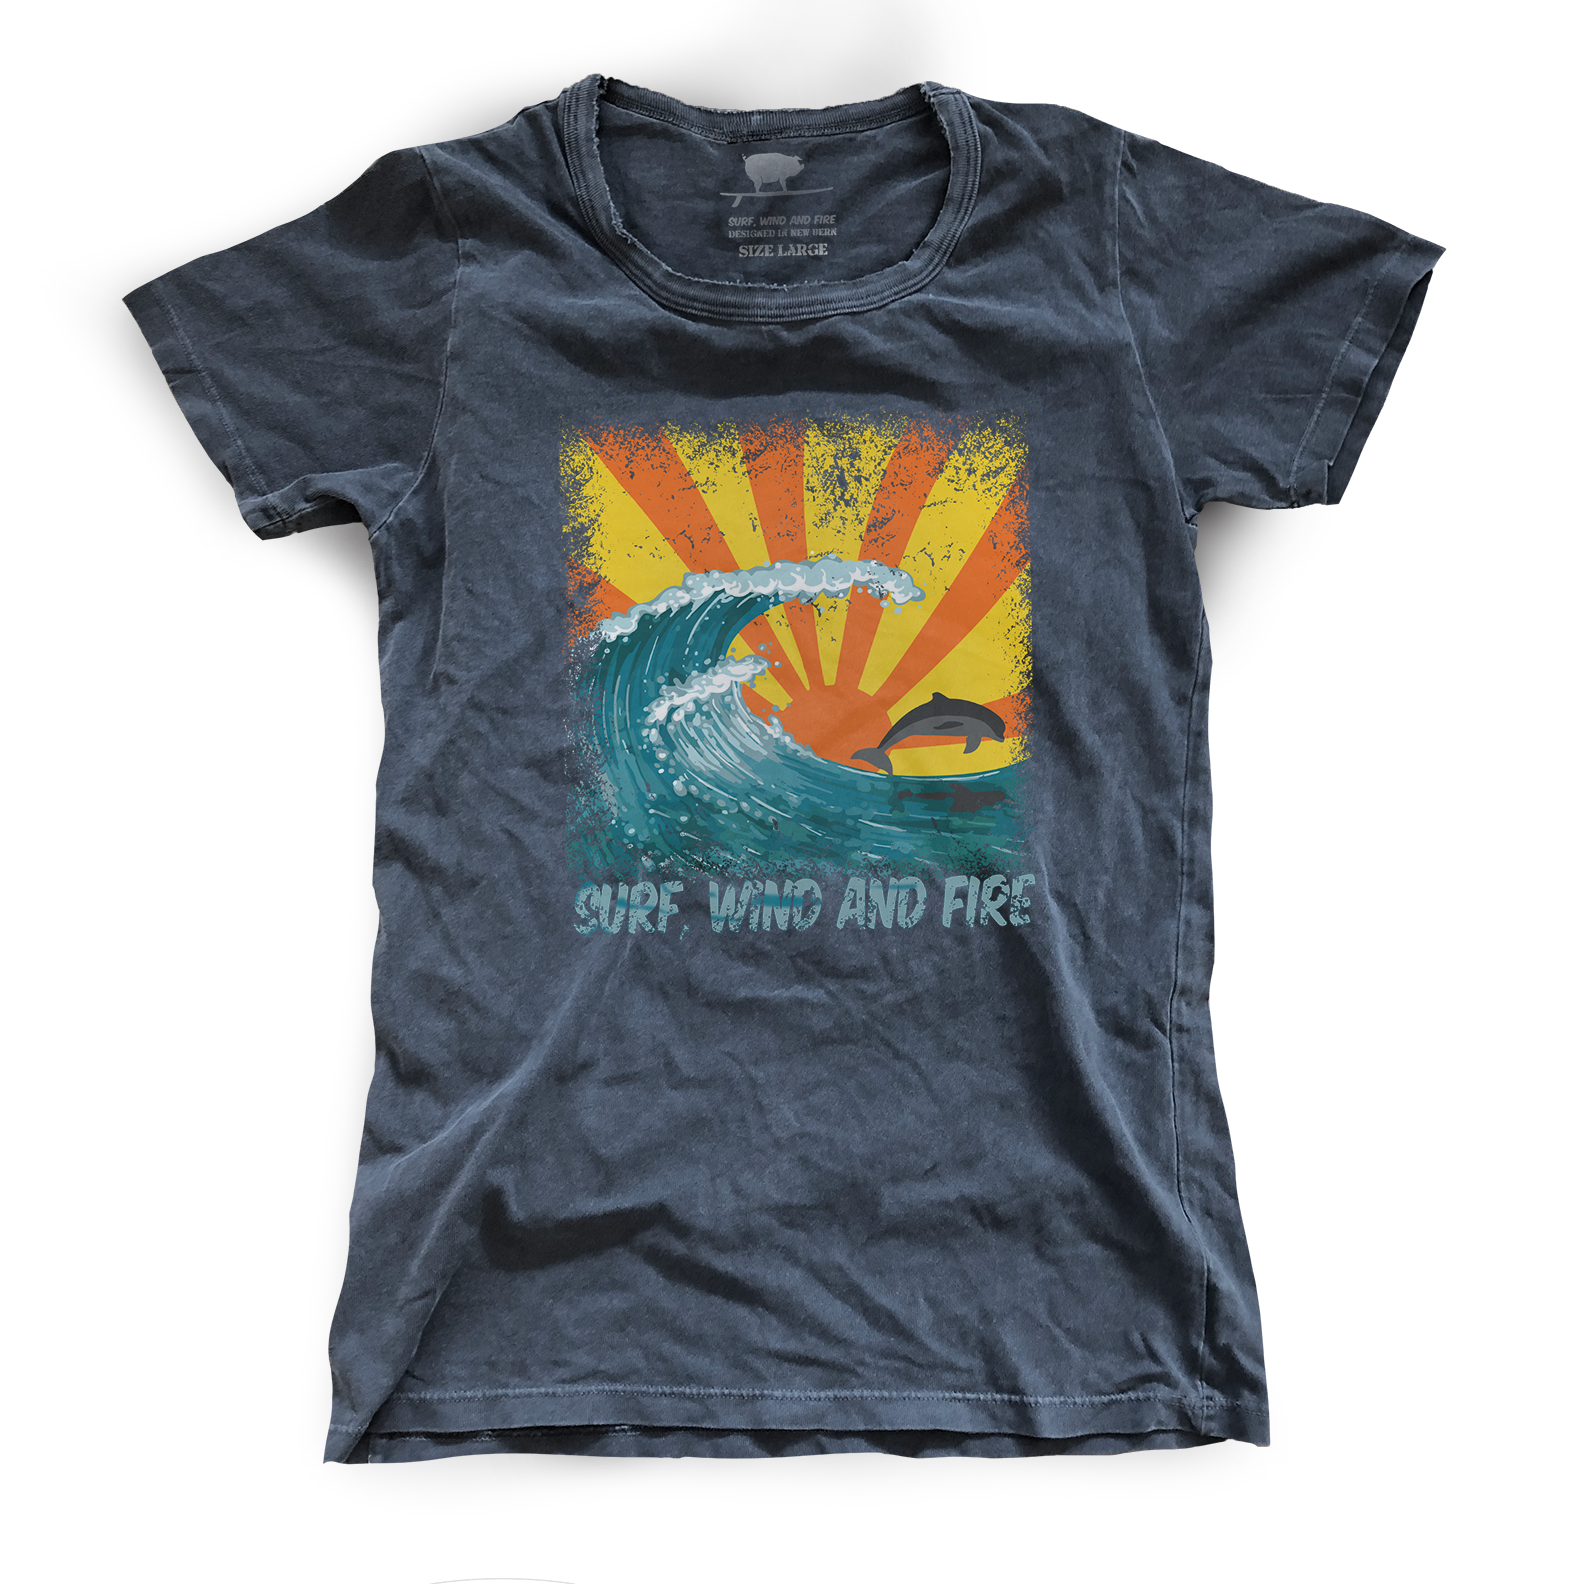 Surf, Wind and Fire Jumping Dolphin Tee, Vintage Black